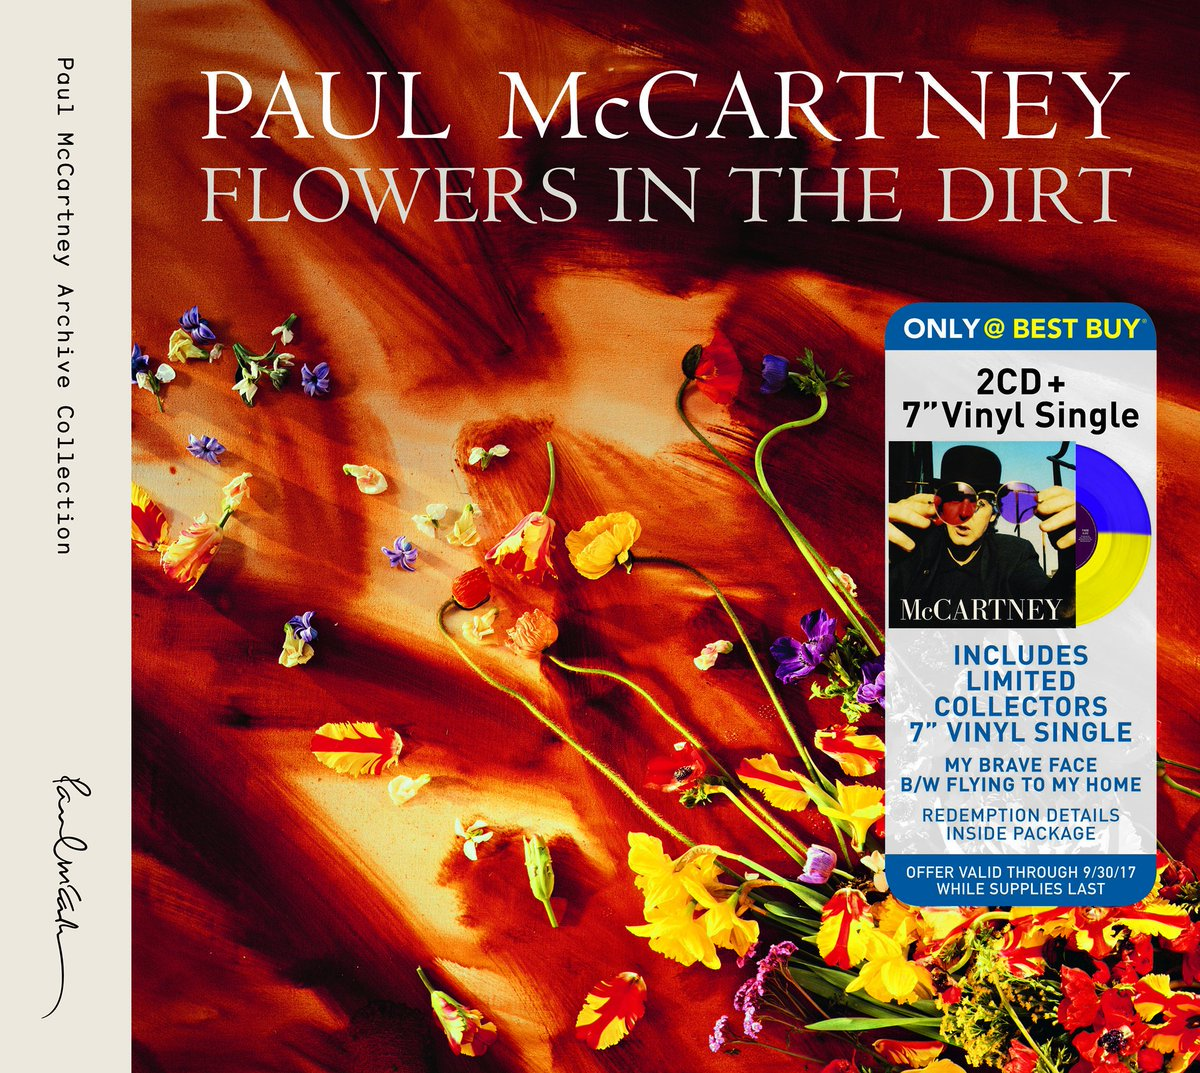 Paul McCartney on Twitter: